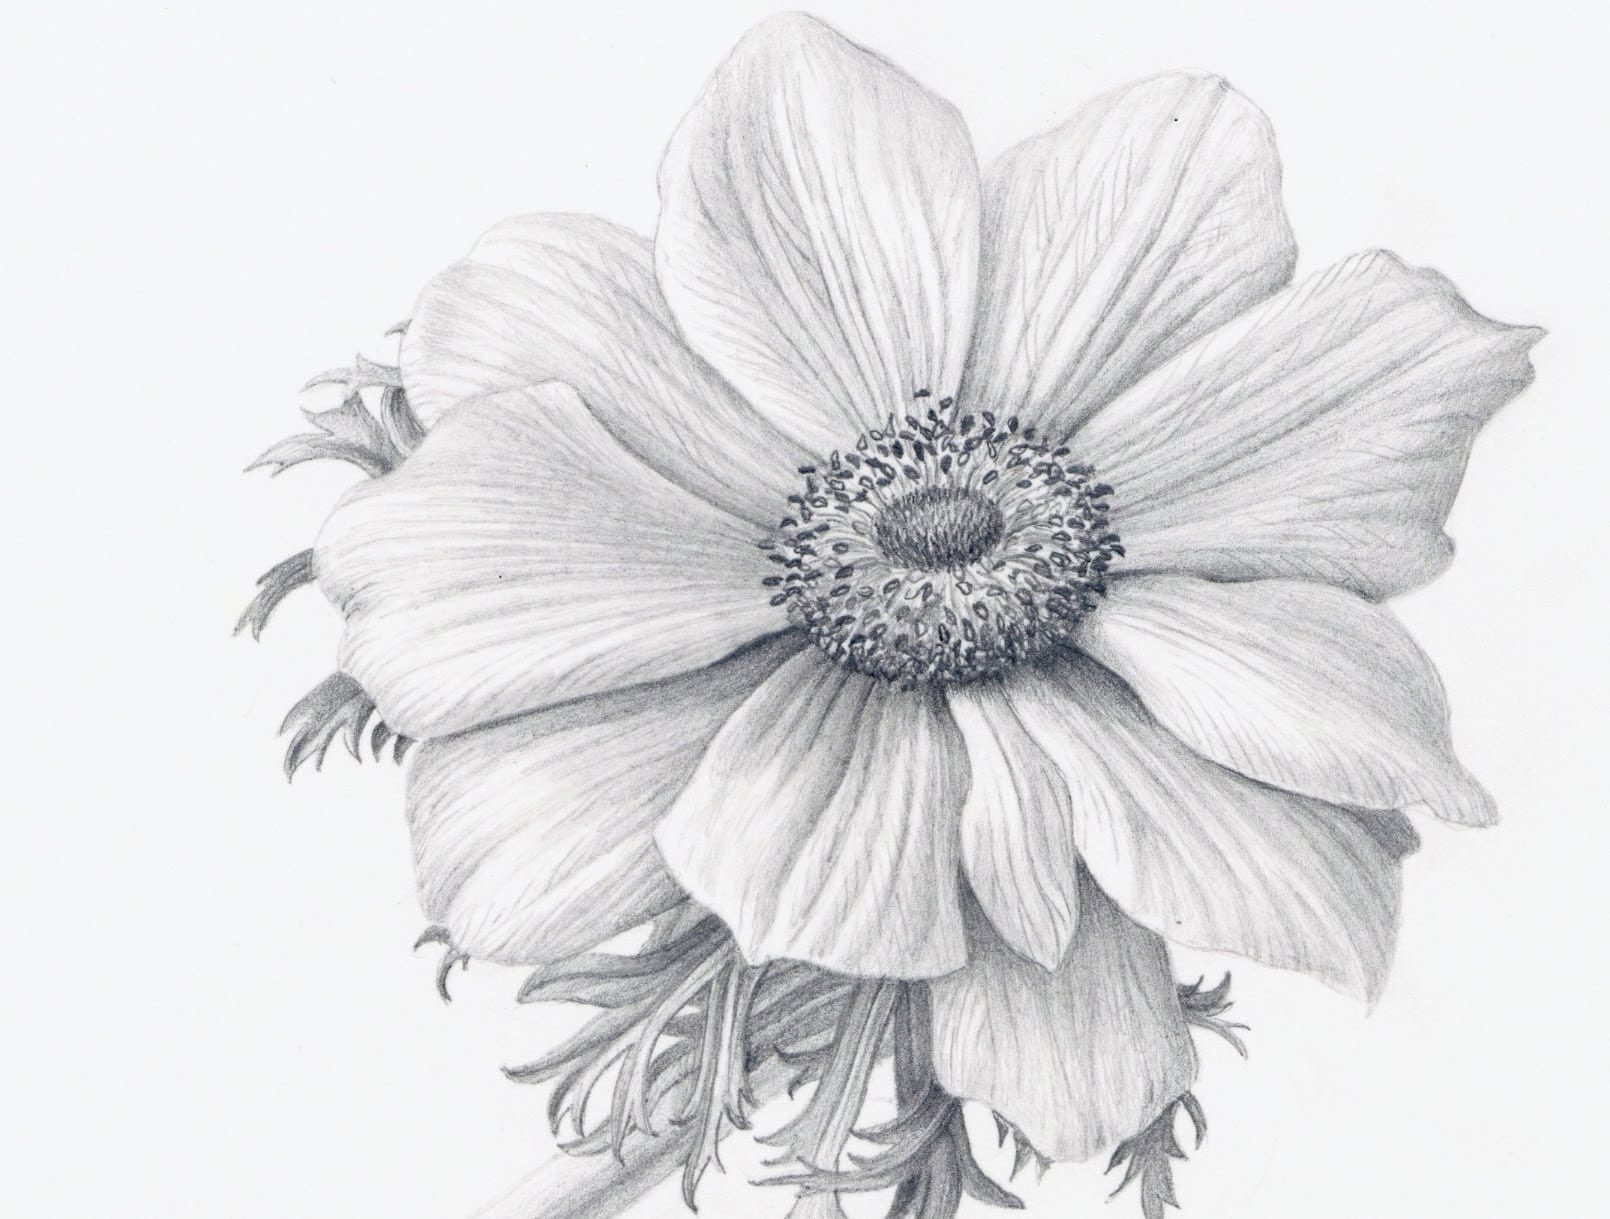 How To Draw Flowers Realistically